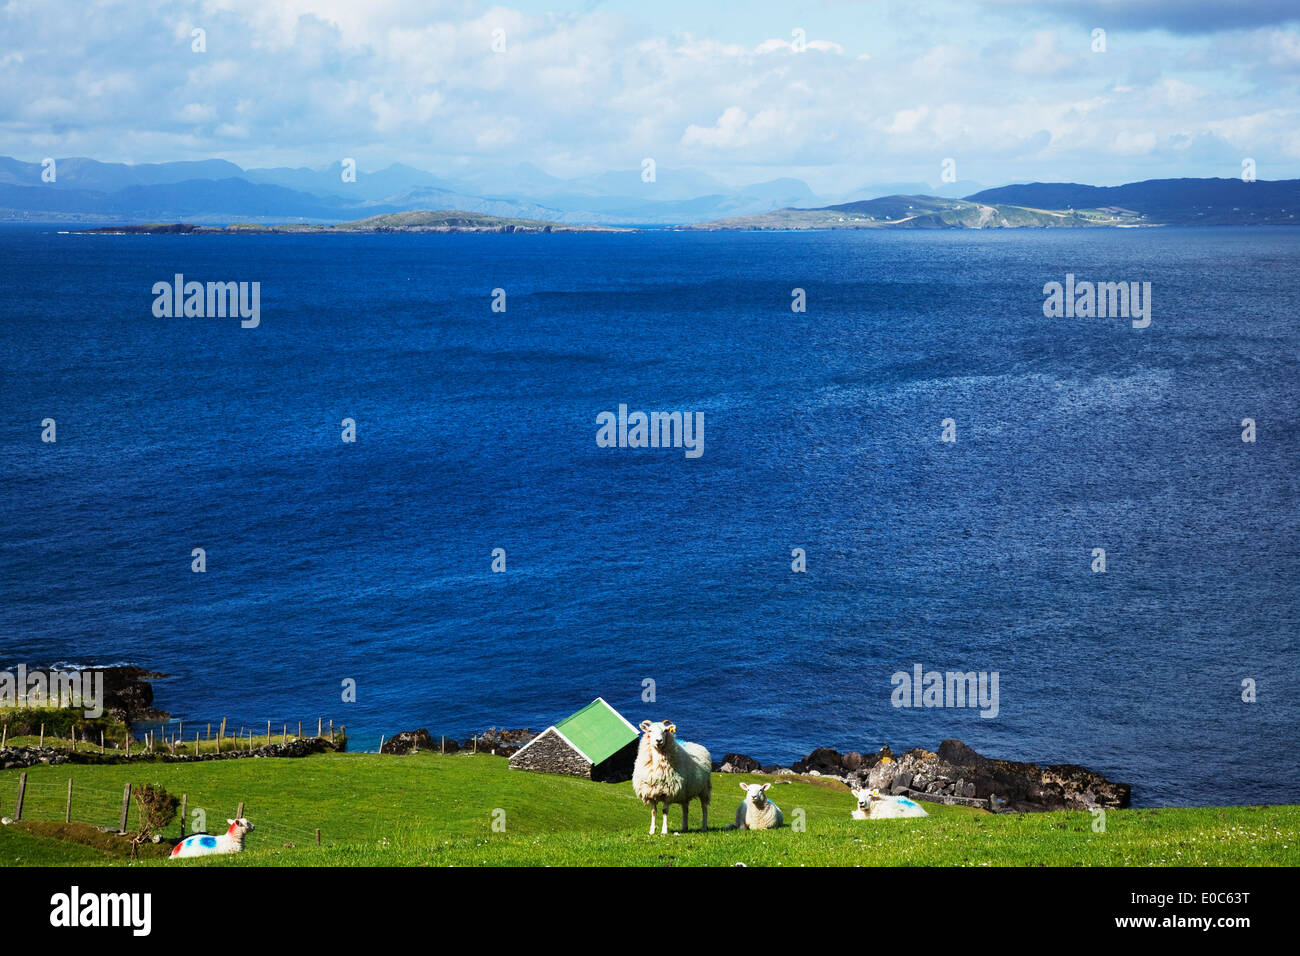 Distant mountains along the coastline with sheep grazing on the grass in the foreground, near Eyeries; County Cork, Ireland - Stock Image